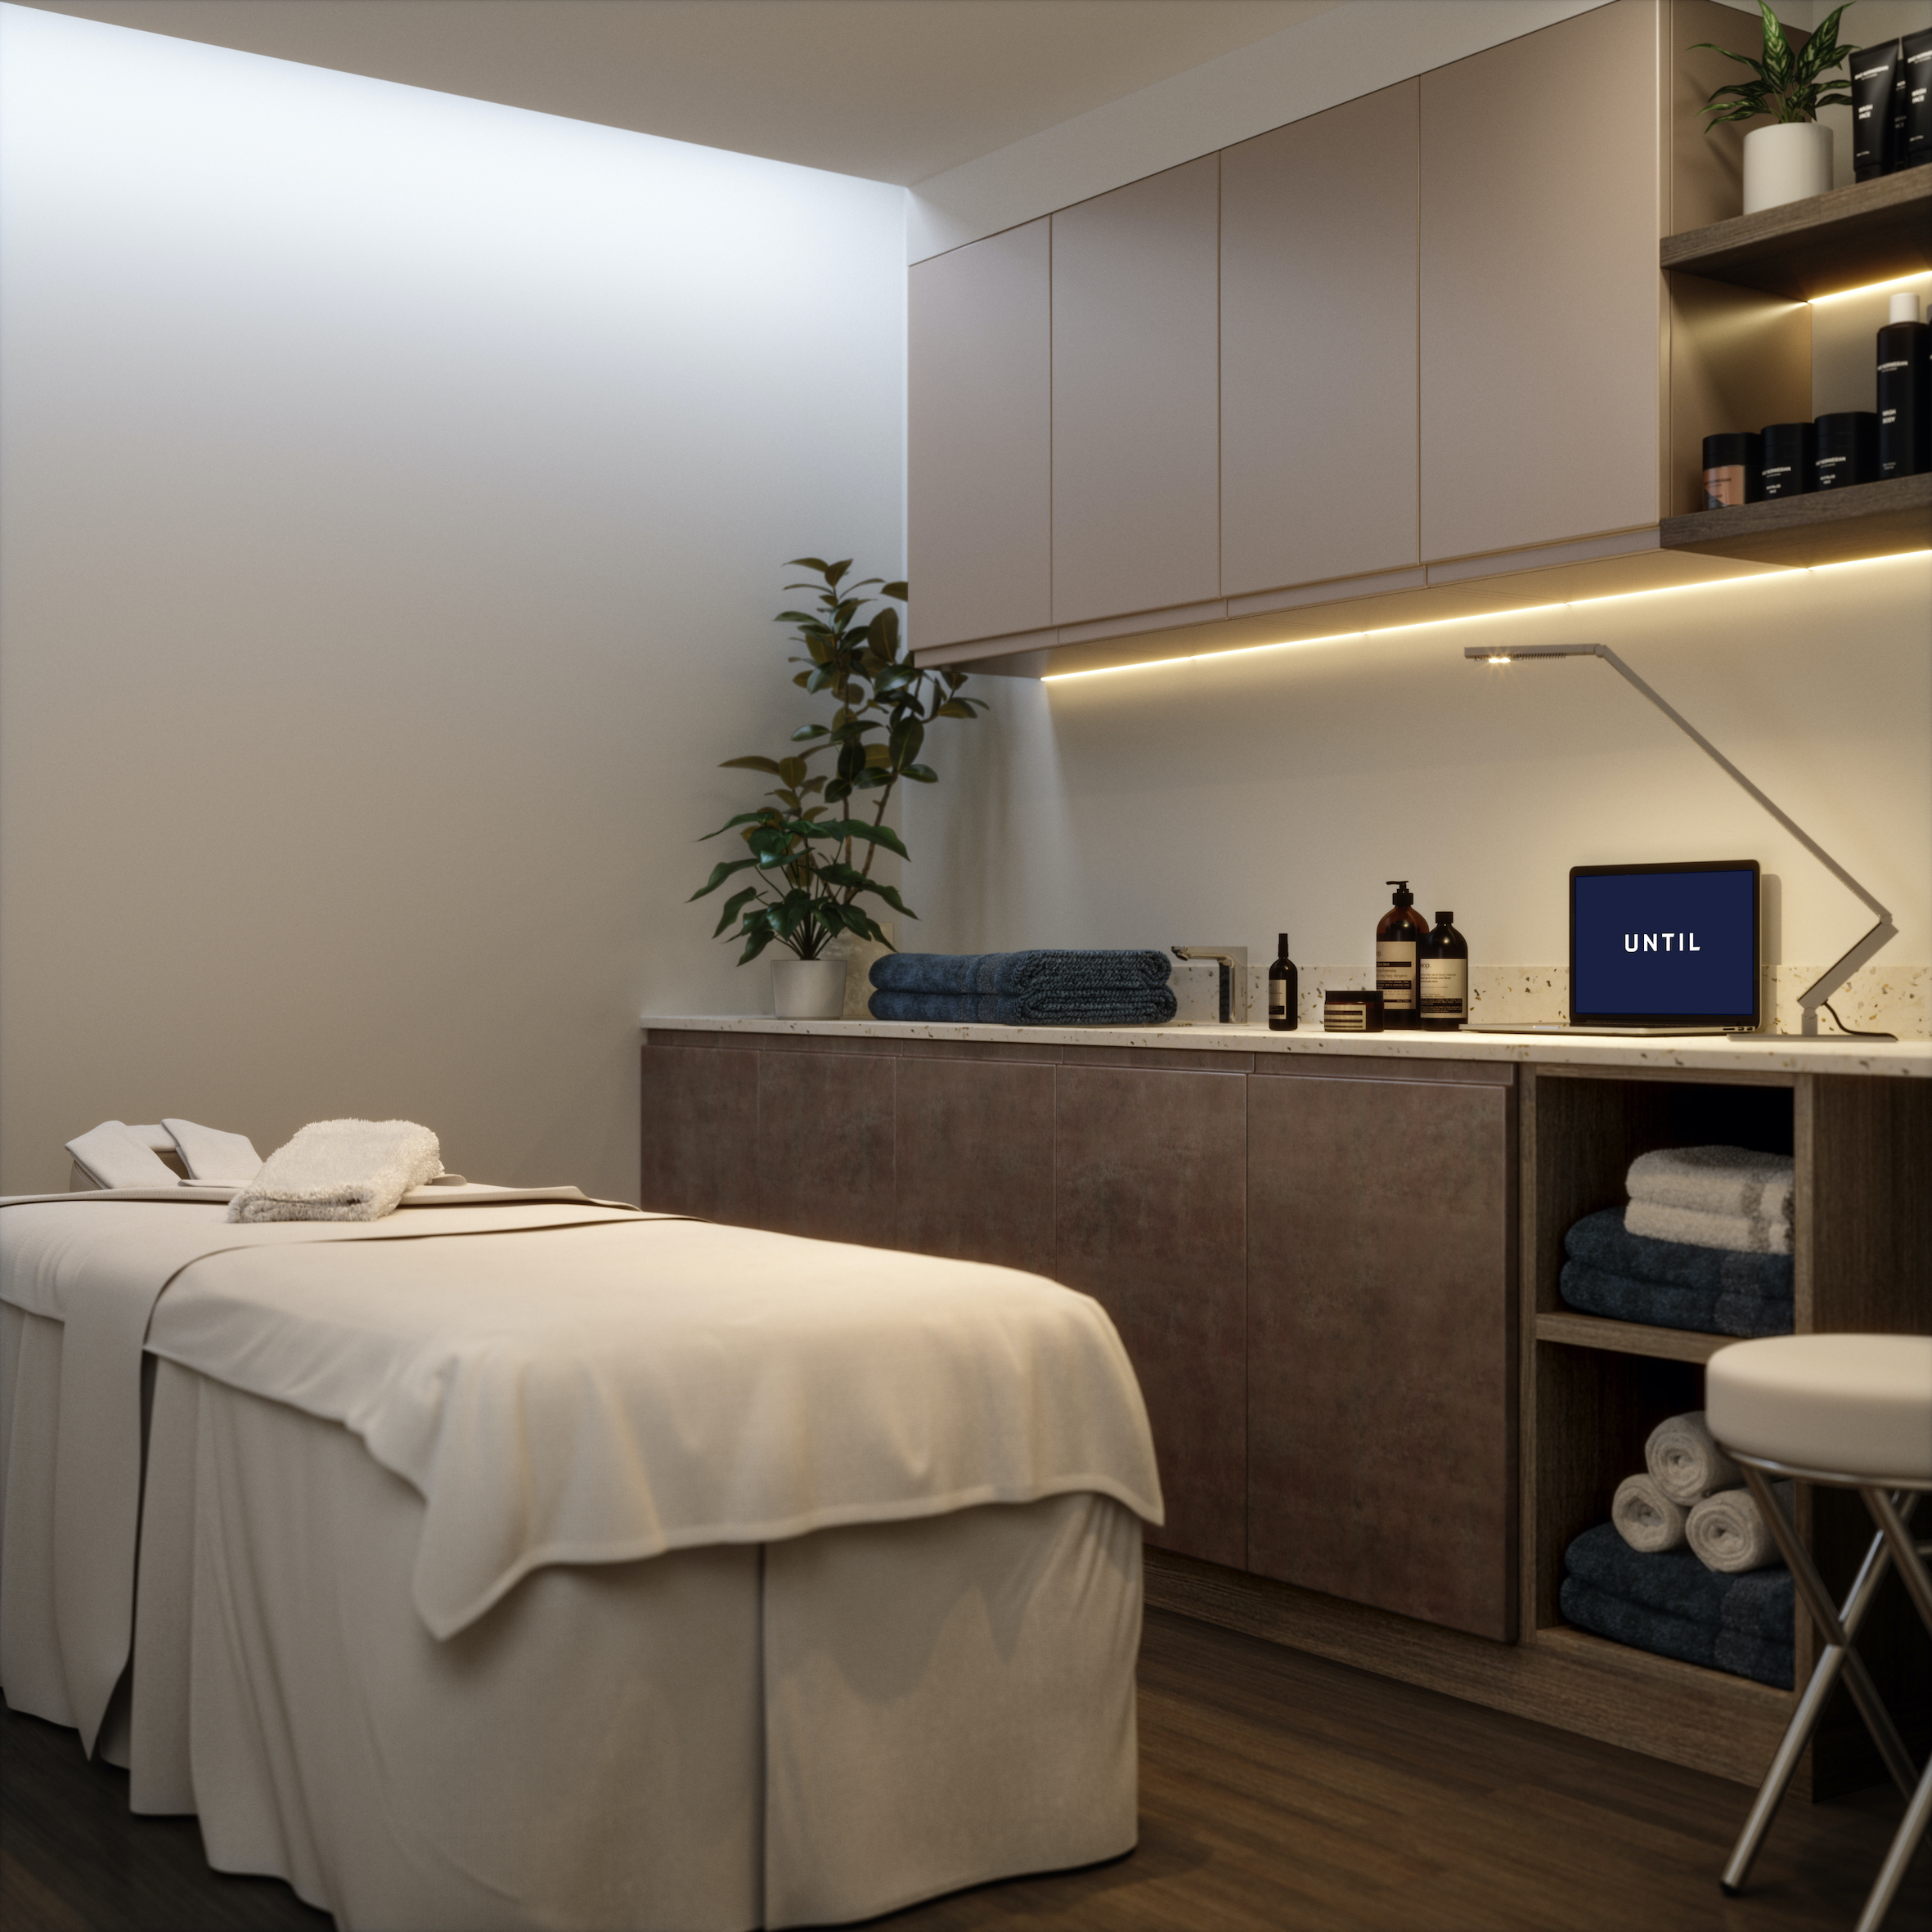 until treatment room space